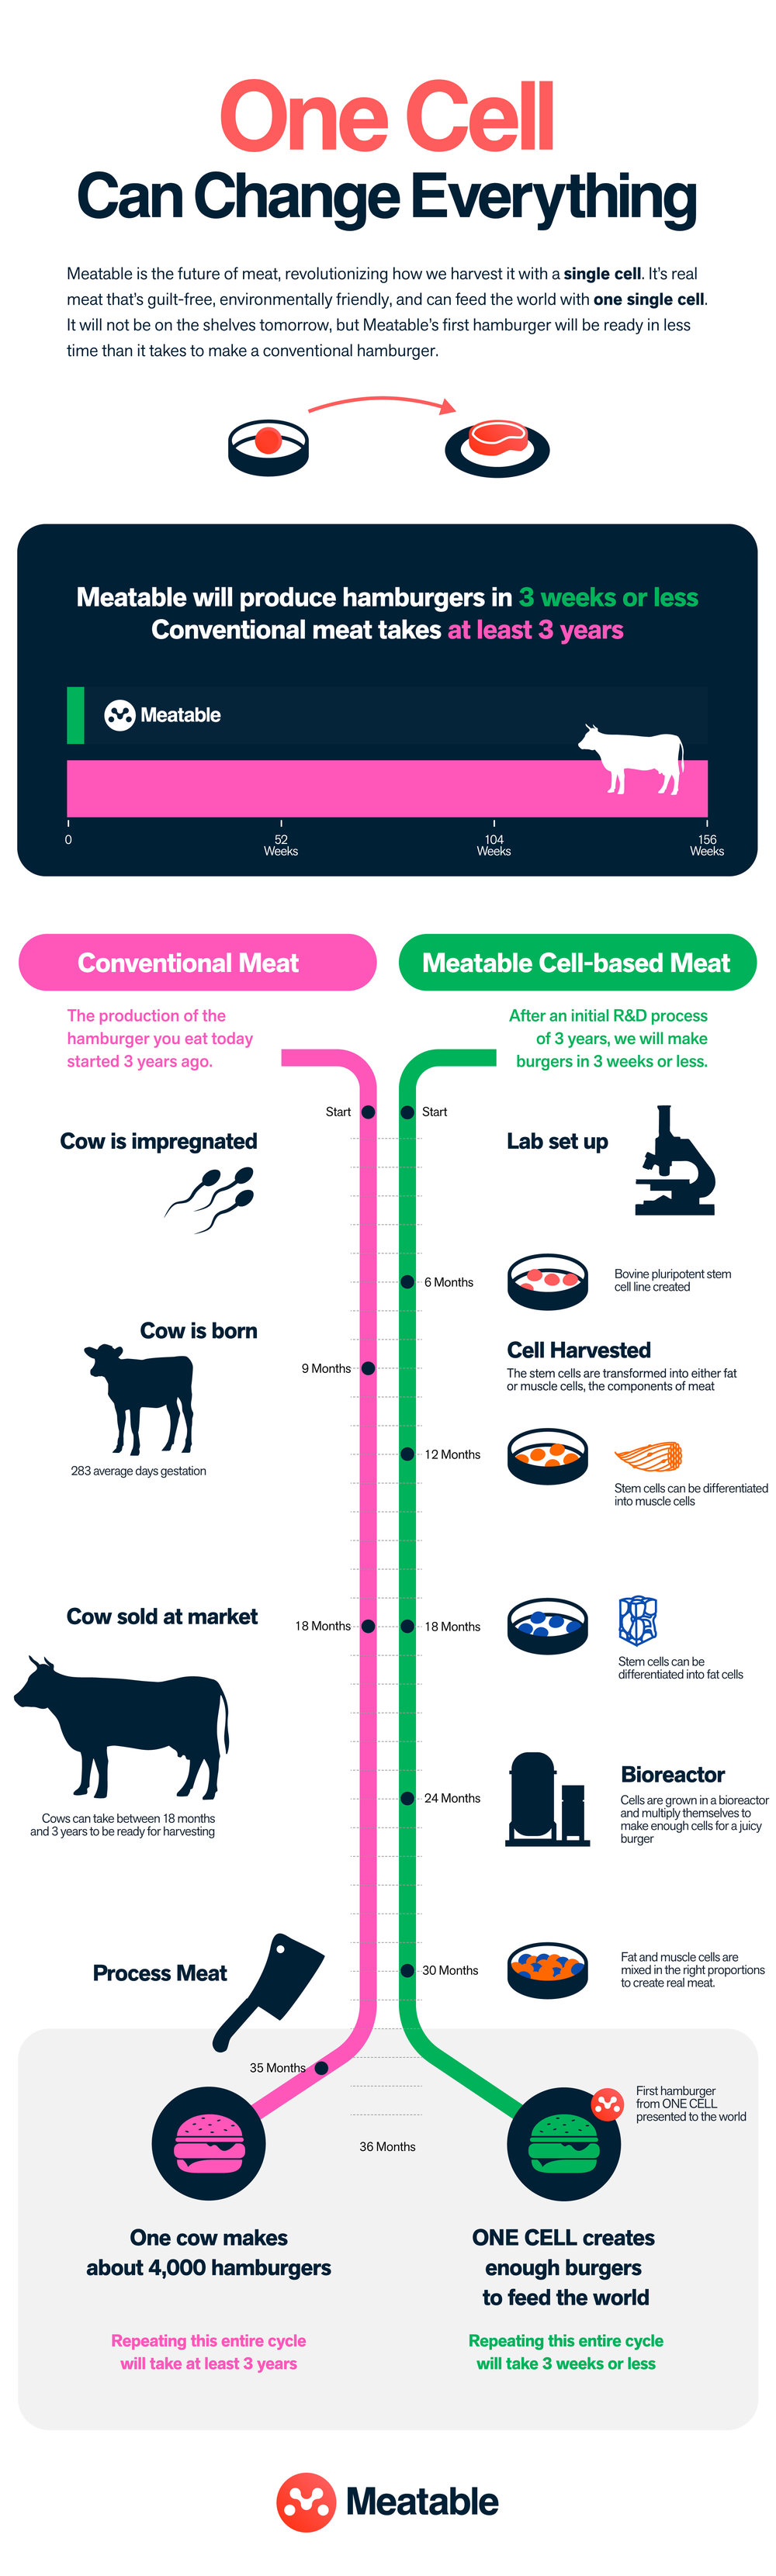 Meatable_infographic_version-07-ENG.jpg